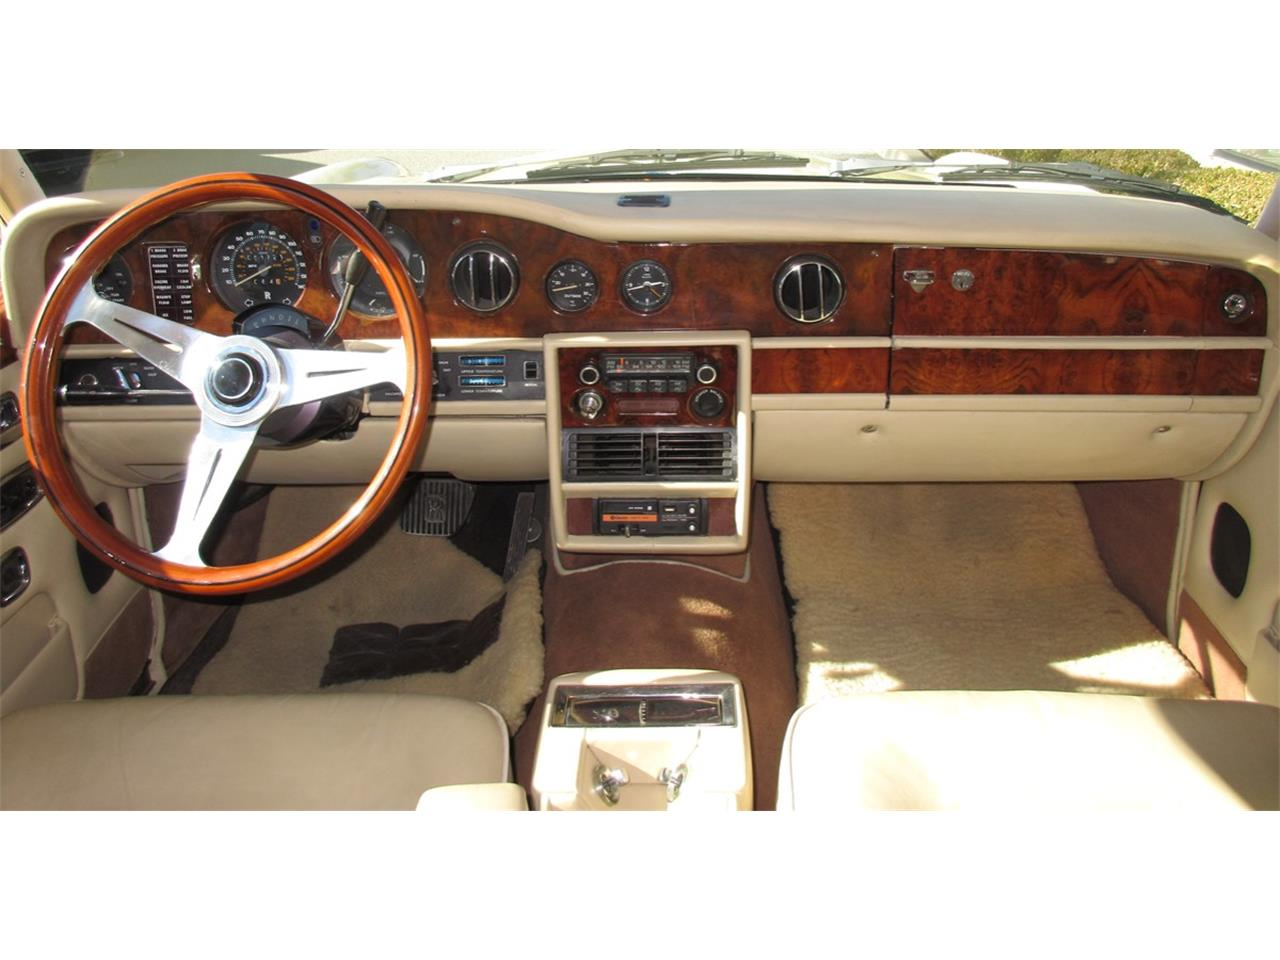 1978 Rolls-Royce Silver Cloud II for sale in Redlands, CA – photo 17